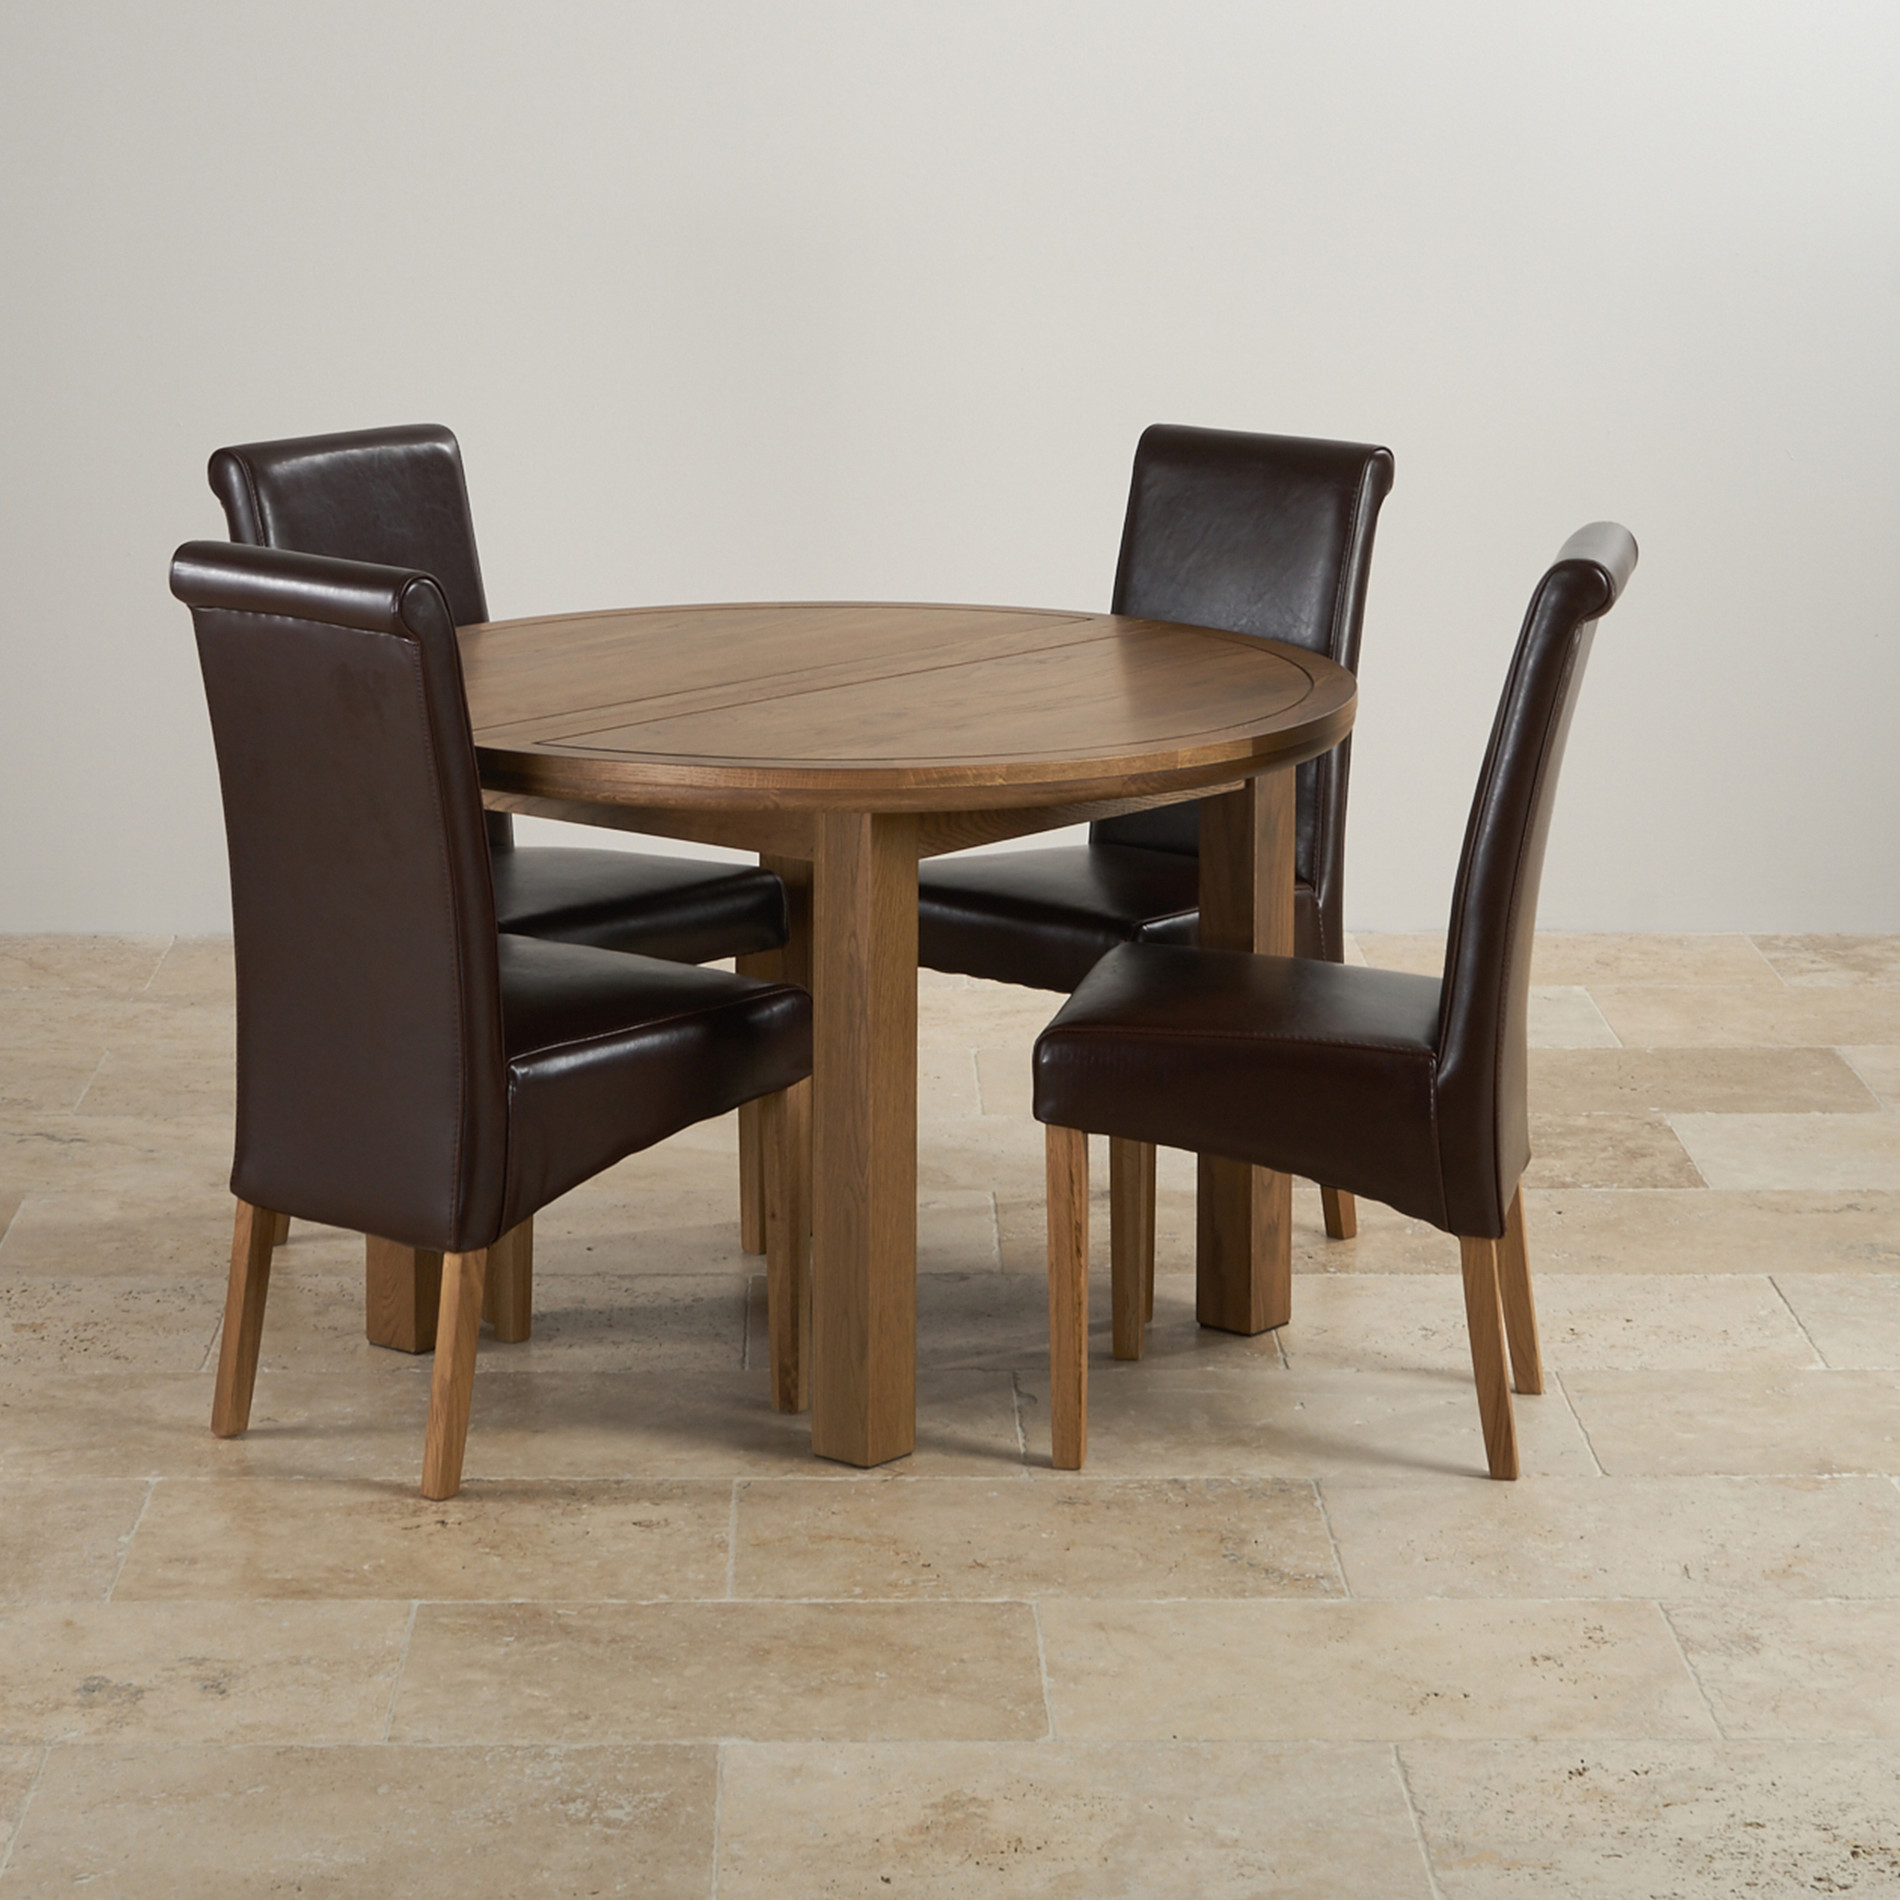 Knightsbridge round extending dining set dining table 4 for Round dining table set for 4